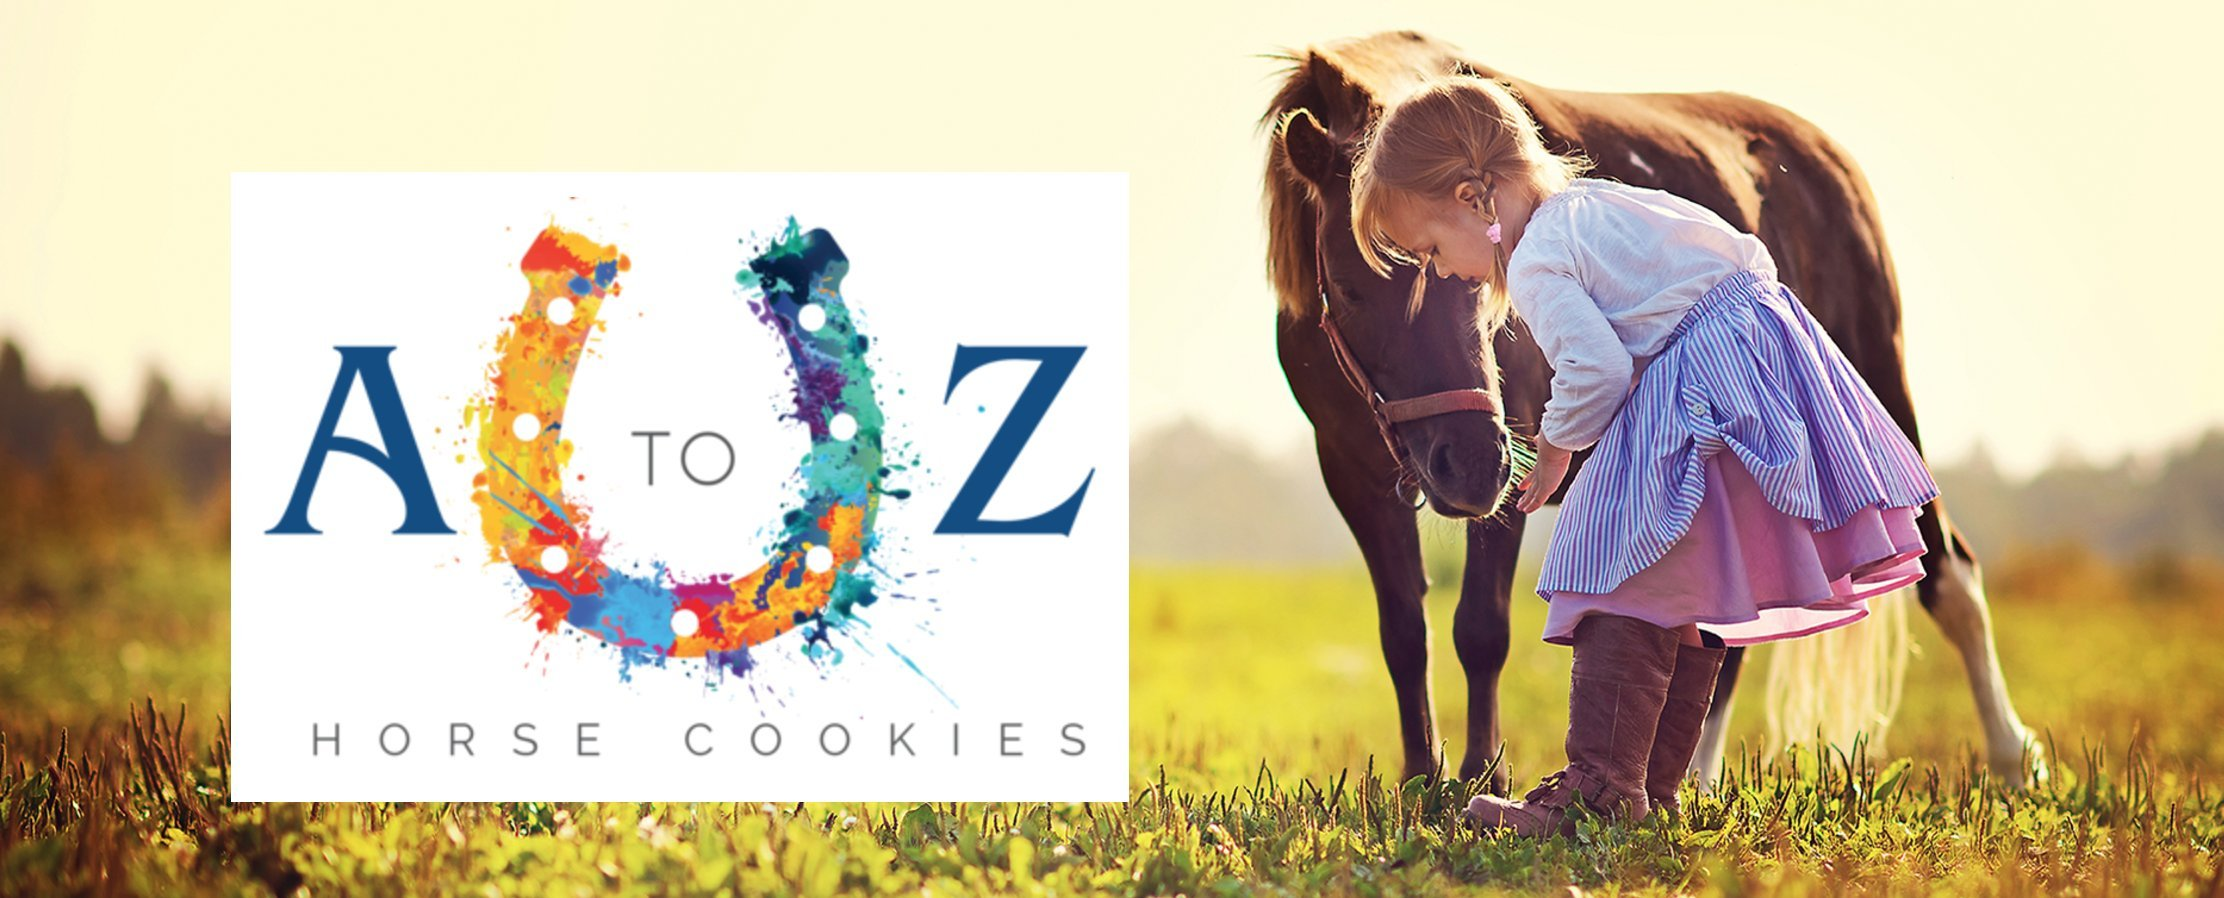 Horse Cookie Treat: Original Flavor by A to Z Horse Cookies, Low Carb Low Sugar Softer Treats, Organic, Great For All Horses And Excellent For Those With Metabolic Conditions, 4.5 lbs Jar by A to Z Horse Cookies (Image #4)